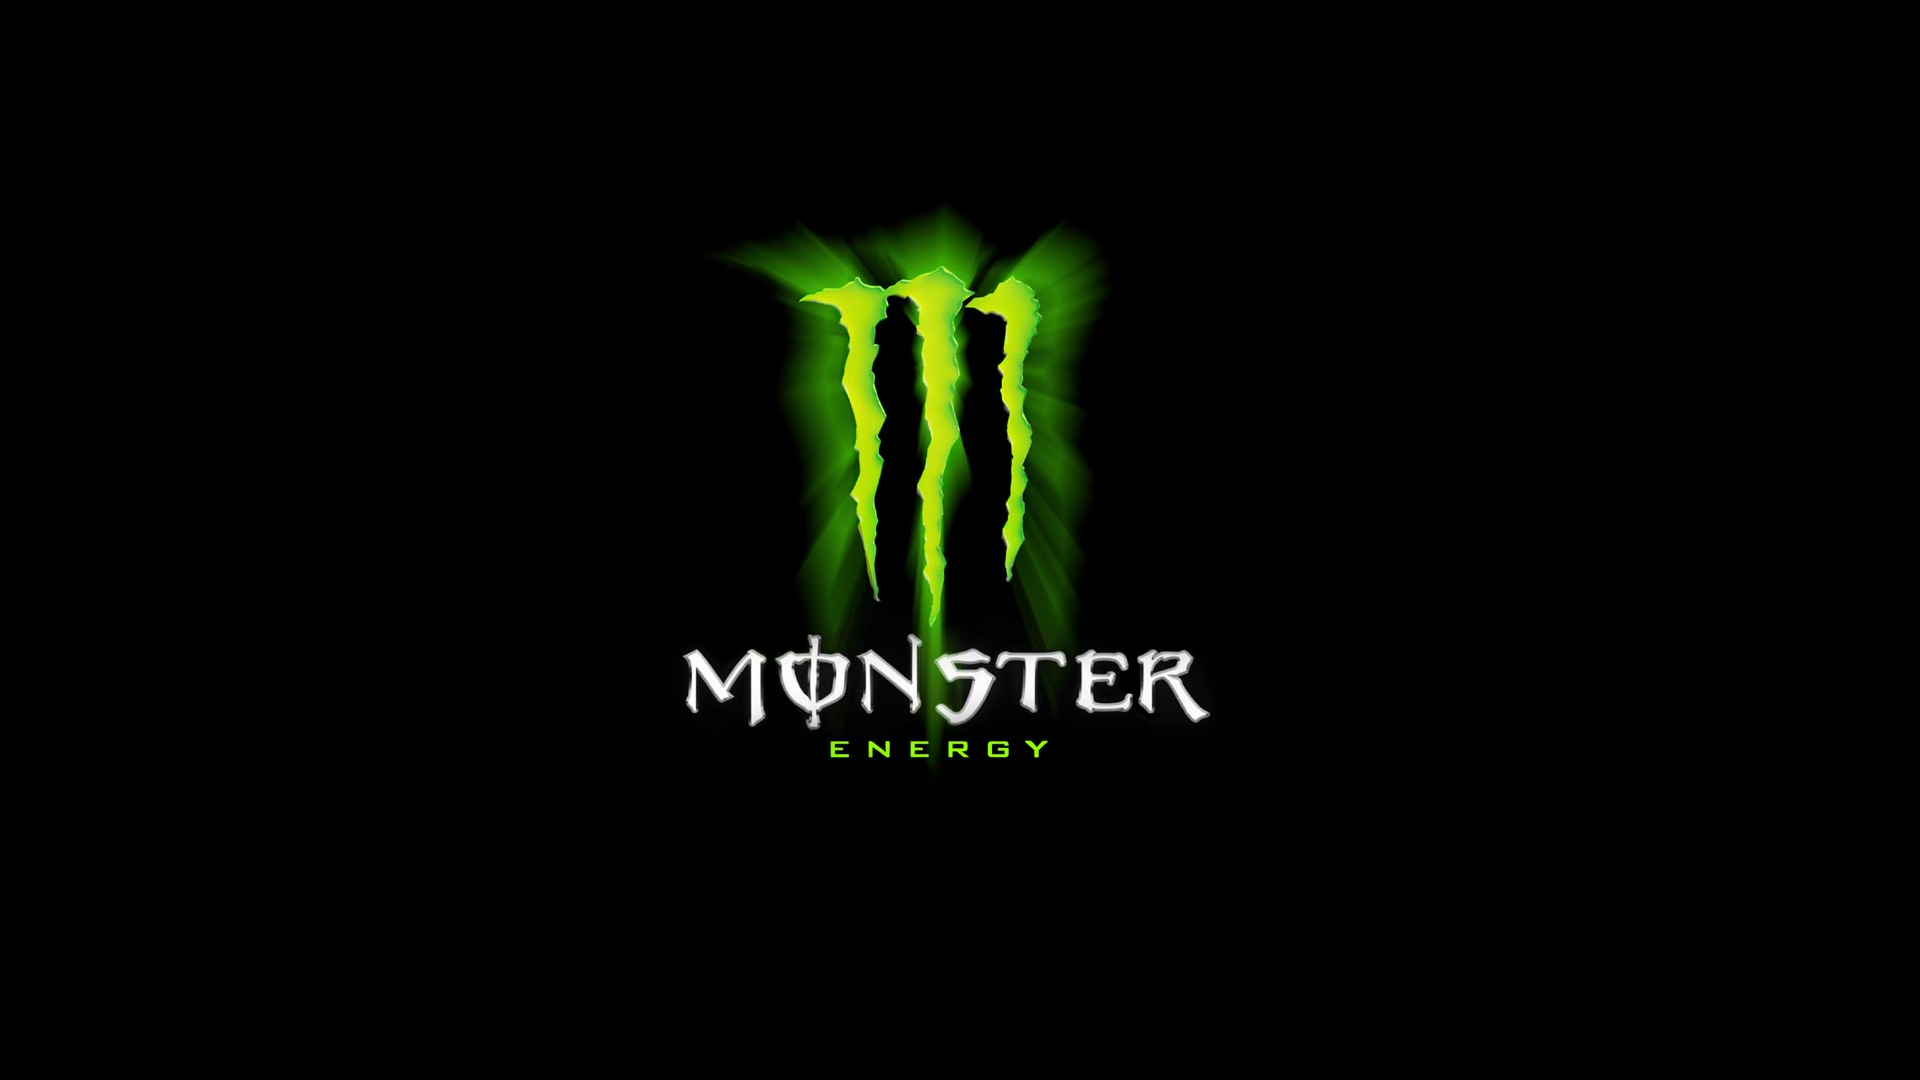 monster energy hd wallpaper 54110